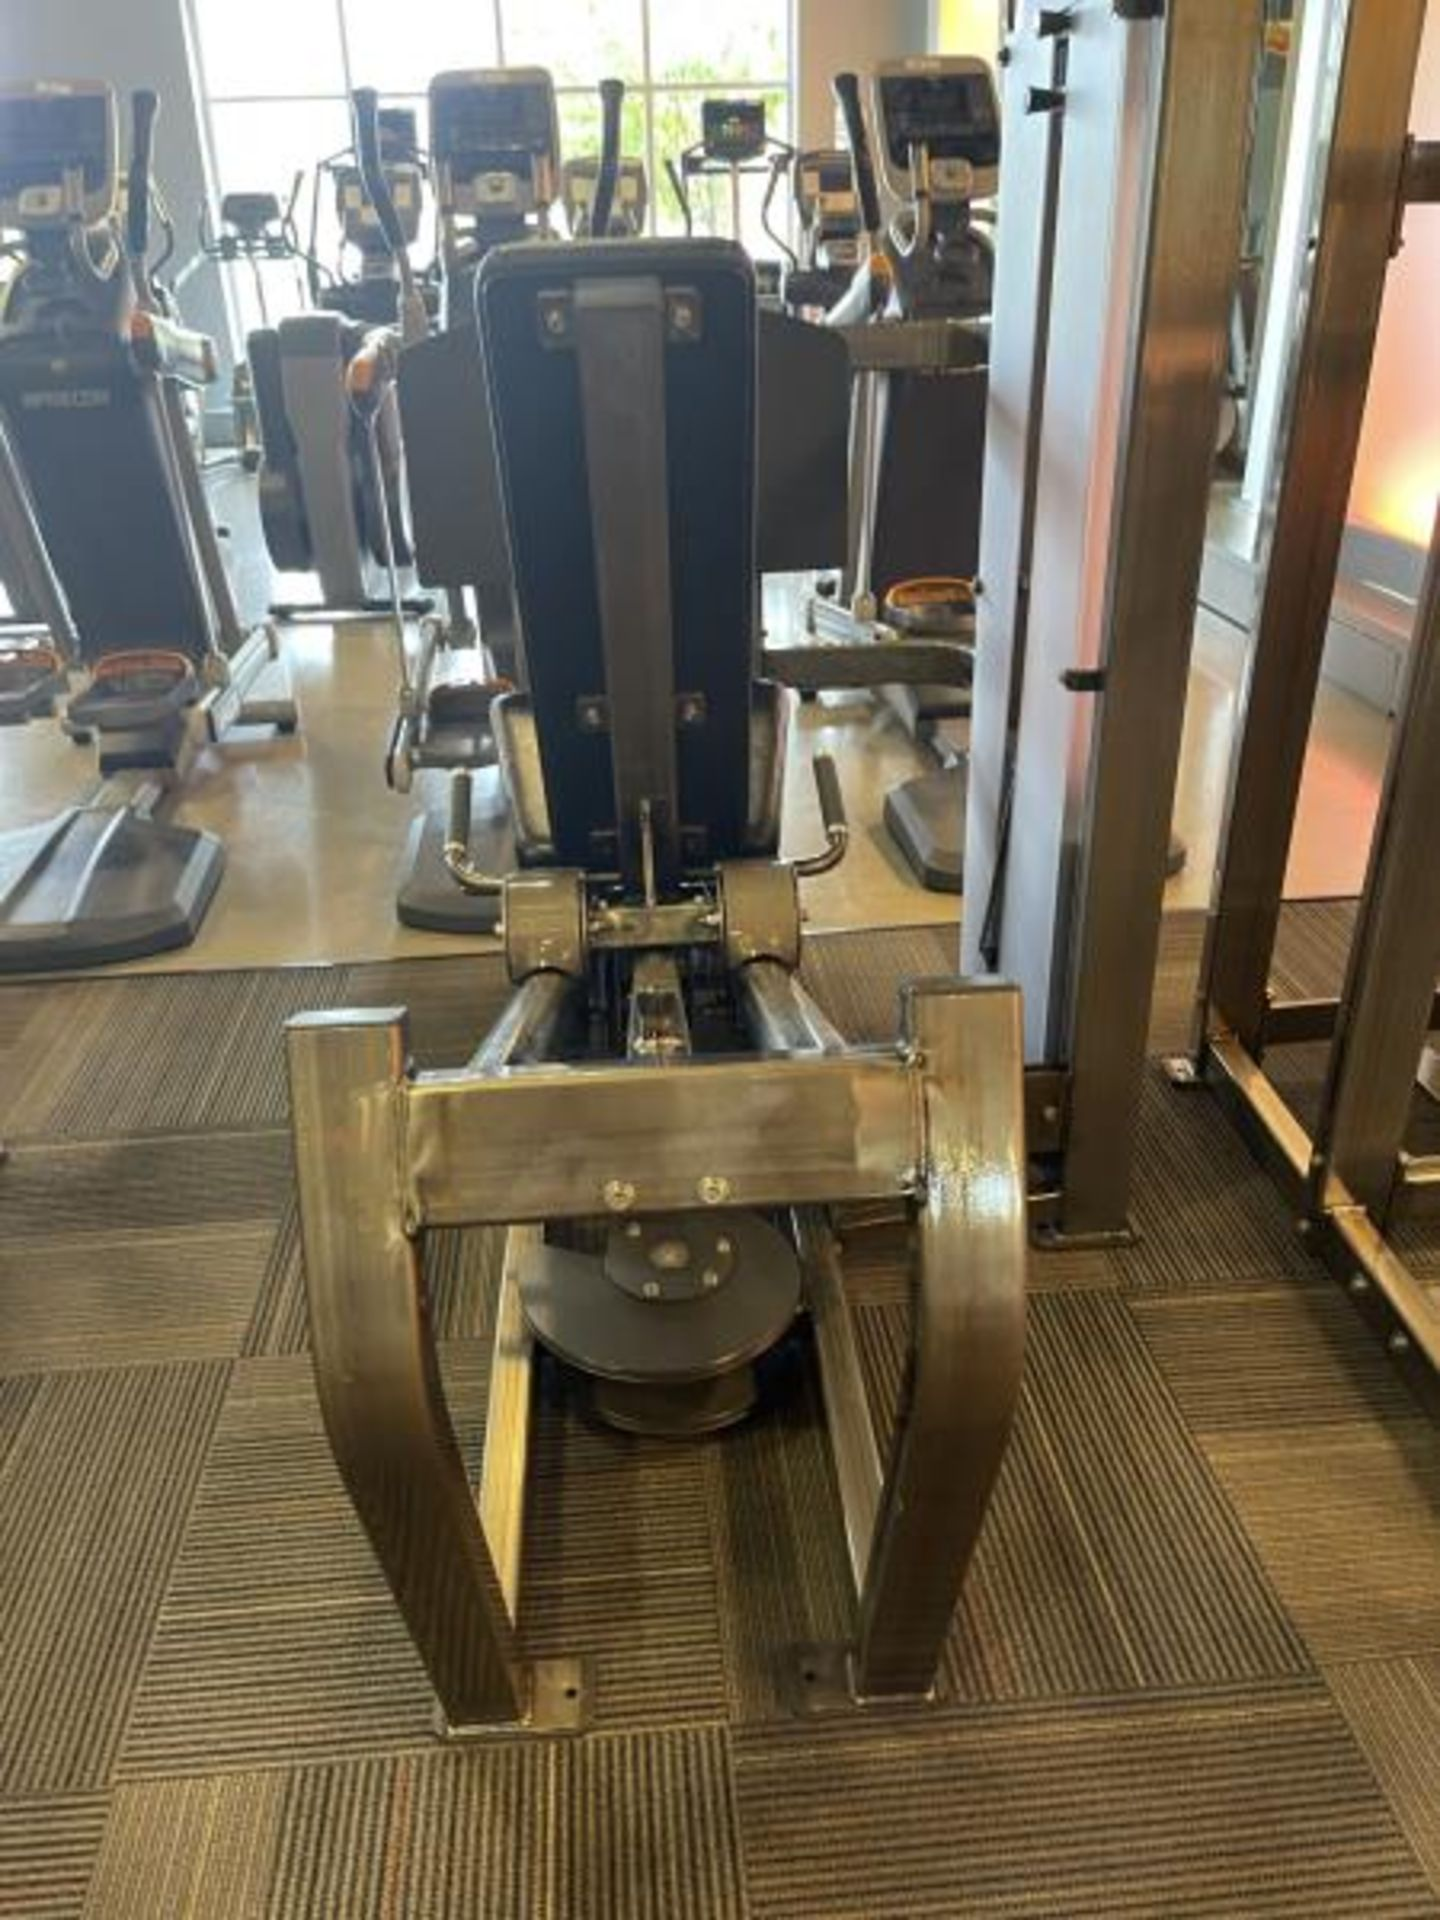 Lifer Fitness Seated Leg Press M:PSSLPE - Image 4 of 6